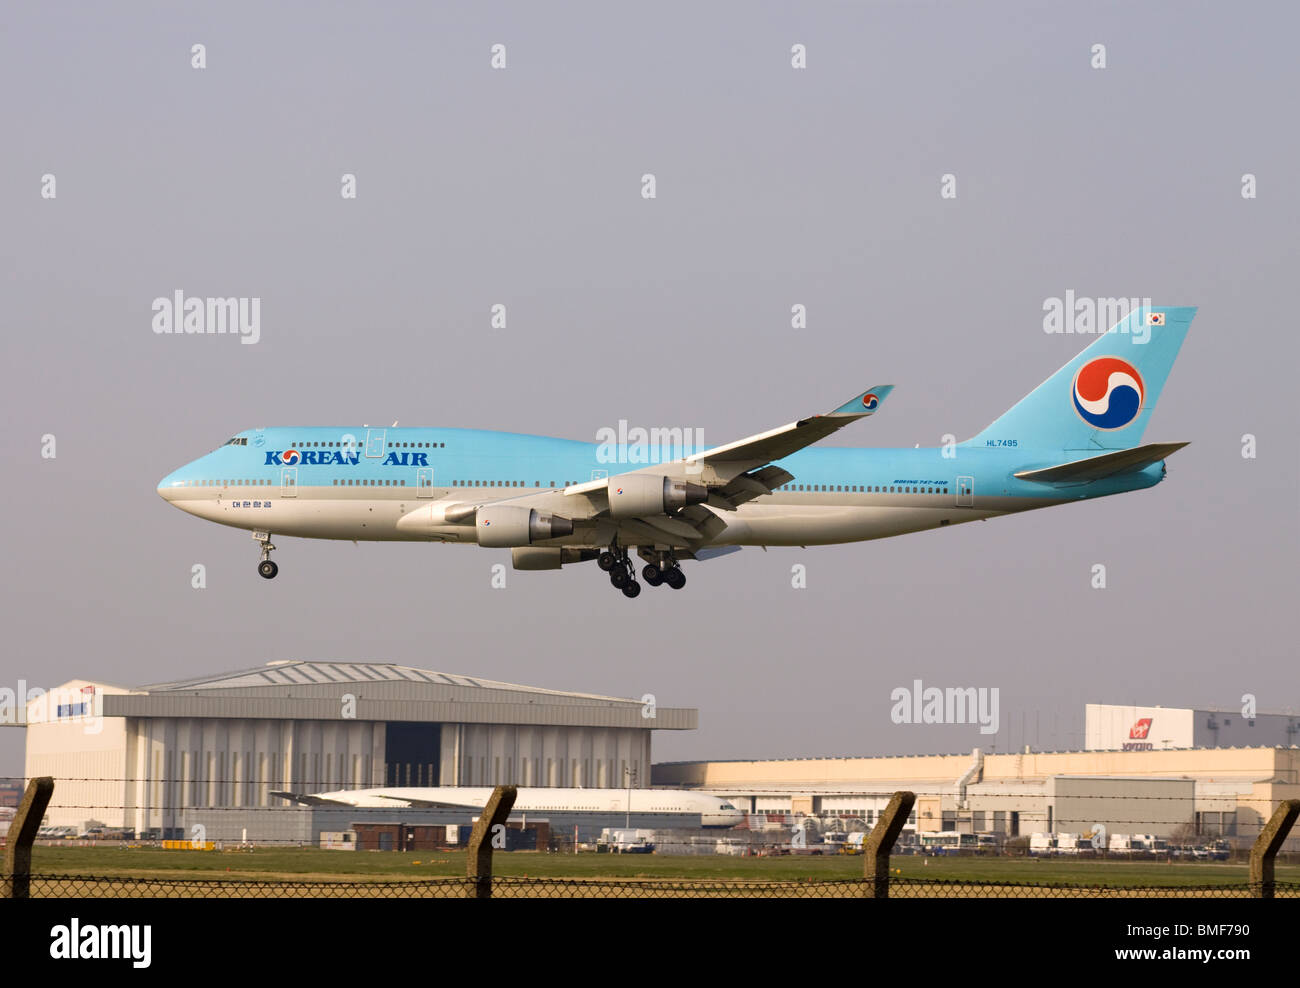 Korean Air Boeing 747-4B5 landing at London Heathrow airport. - Stock Image